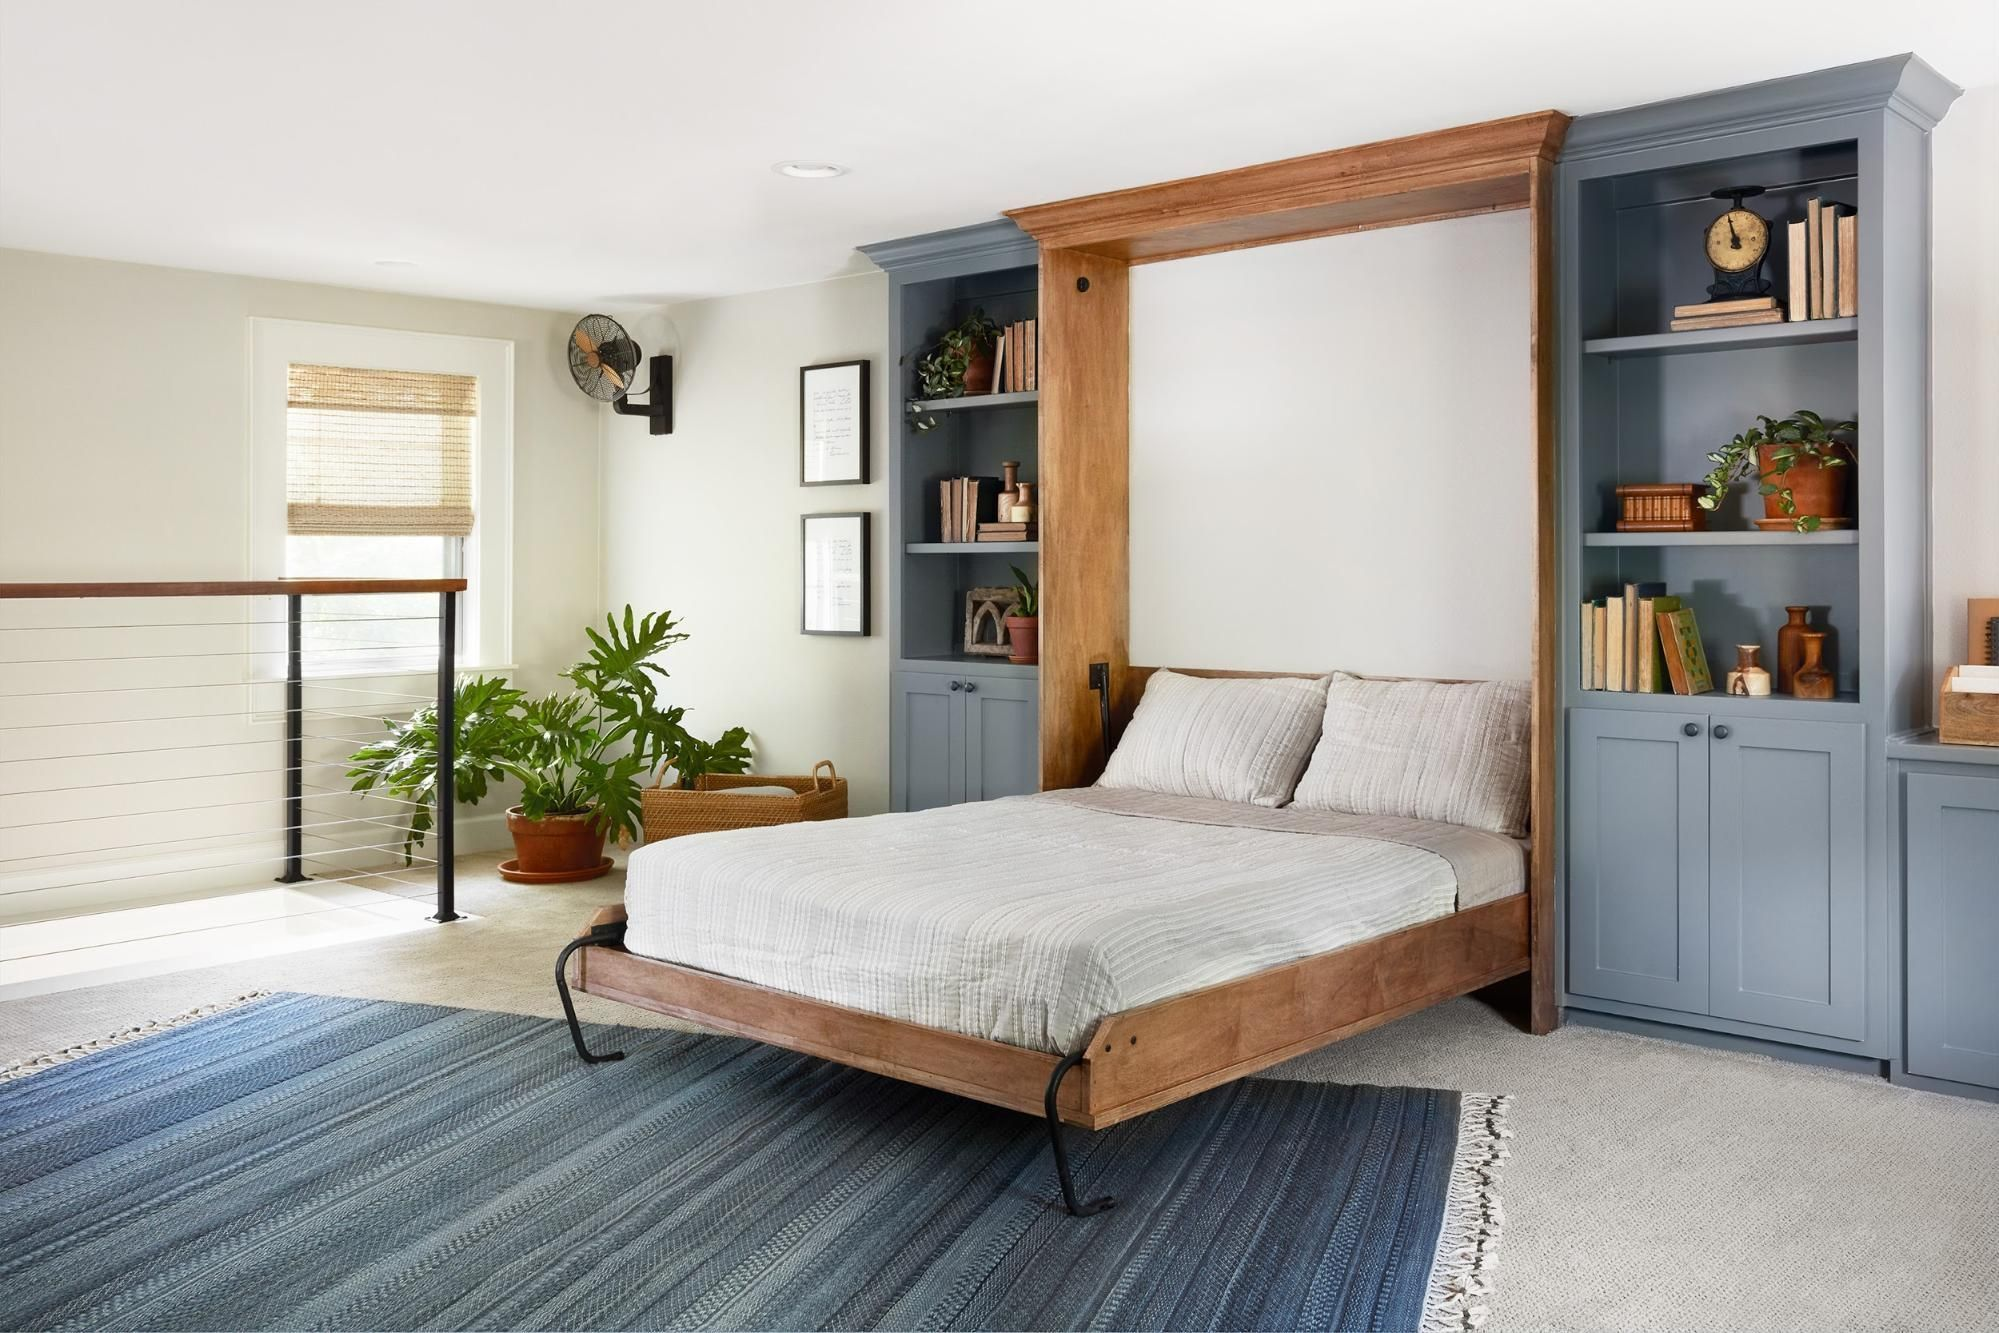 Episode 3 Season 5  HGTVs Fixer Upper Chip  Jo Gaines Our solution for converting this space to a guest room was to incorporate a murphy bed Since this